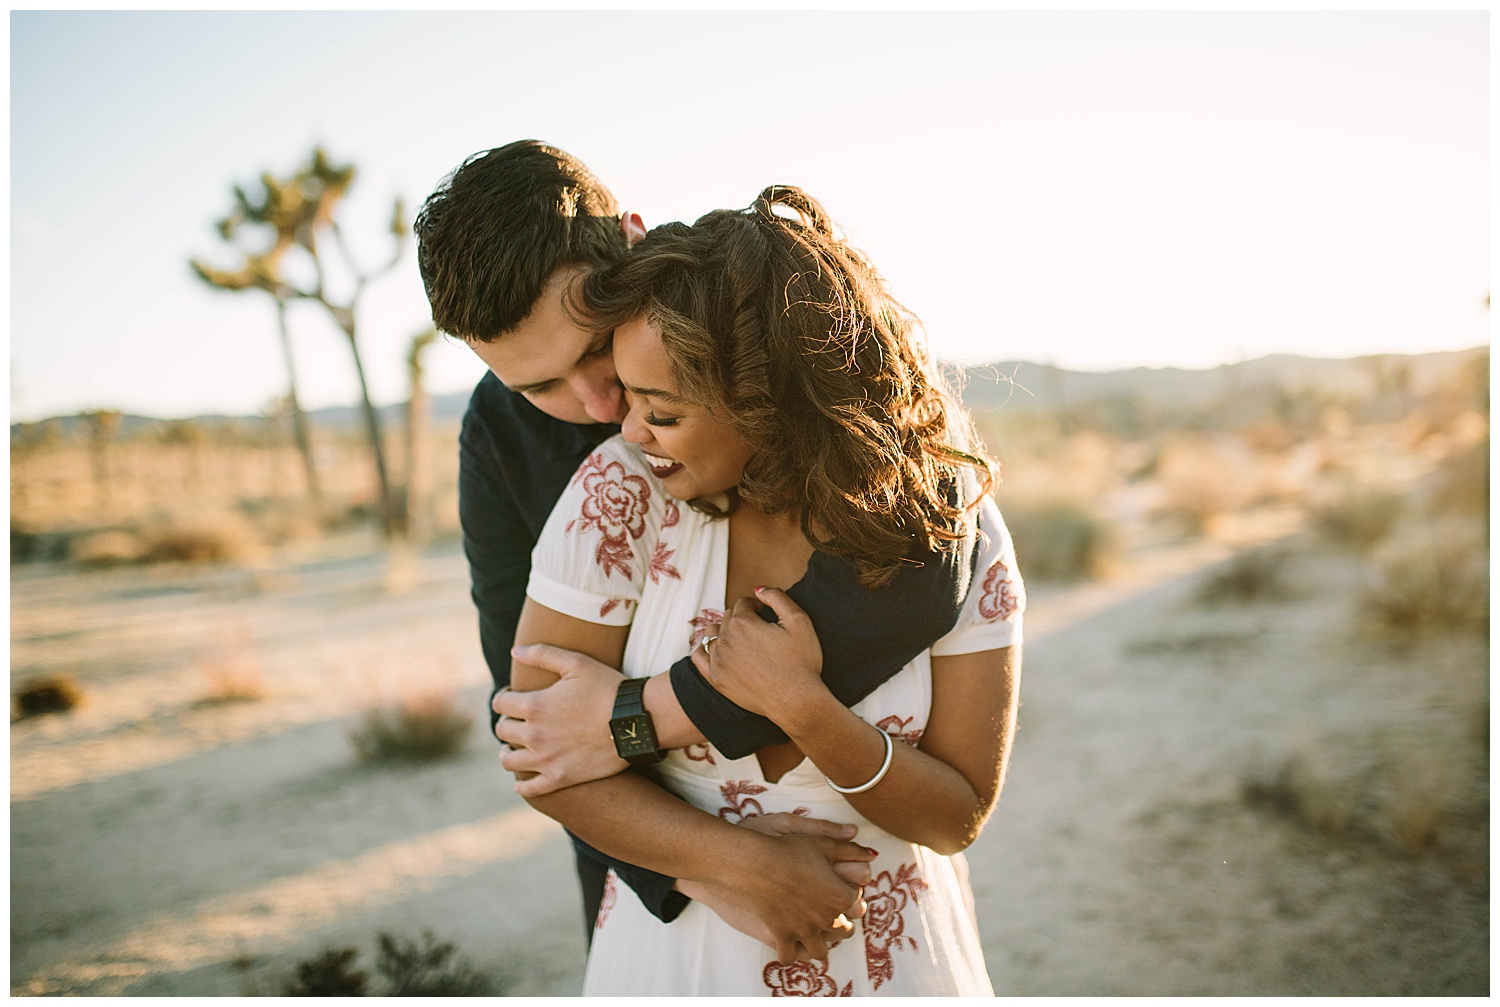 la.lifestyle.photography.session.engaged.malibu.joshuatree.kendralynnephotography-53.jpg